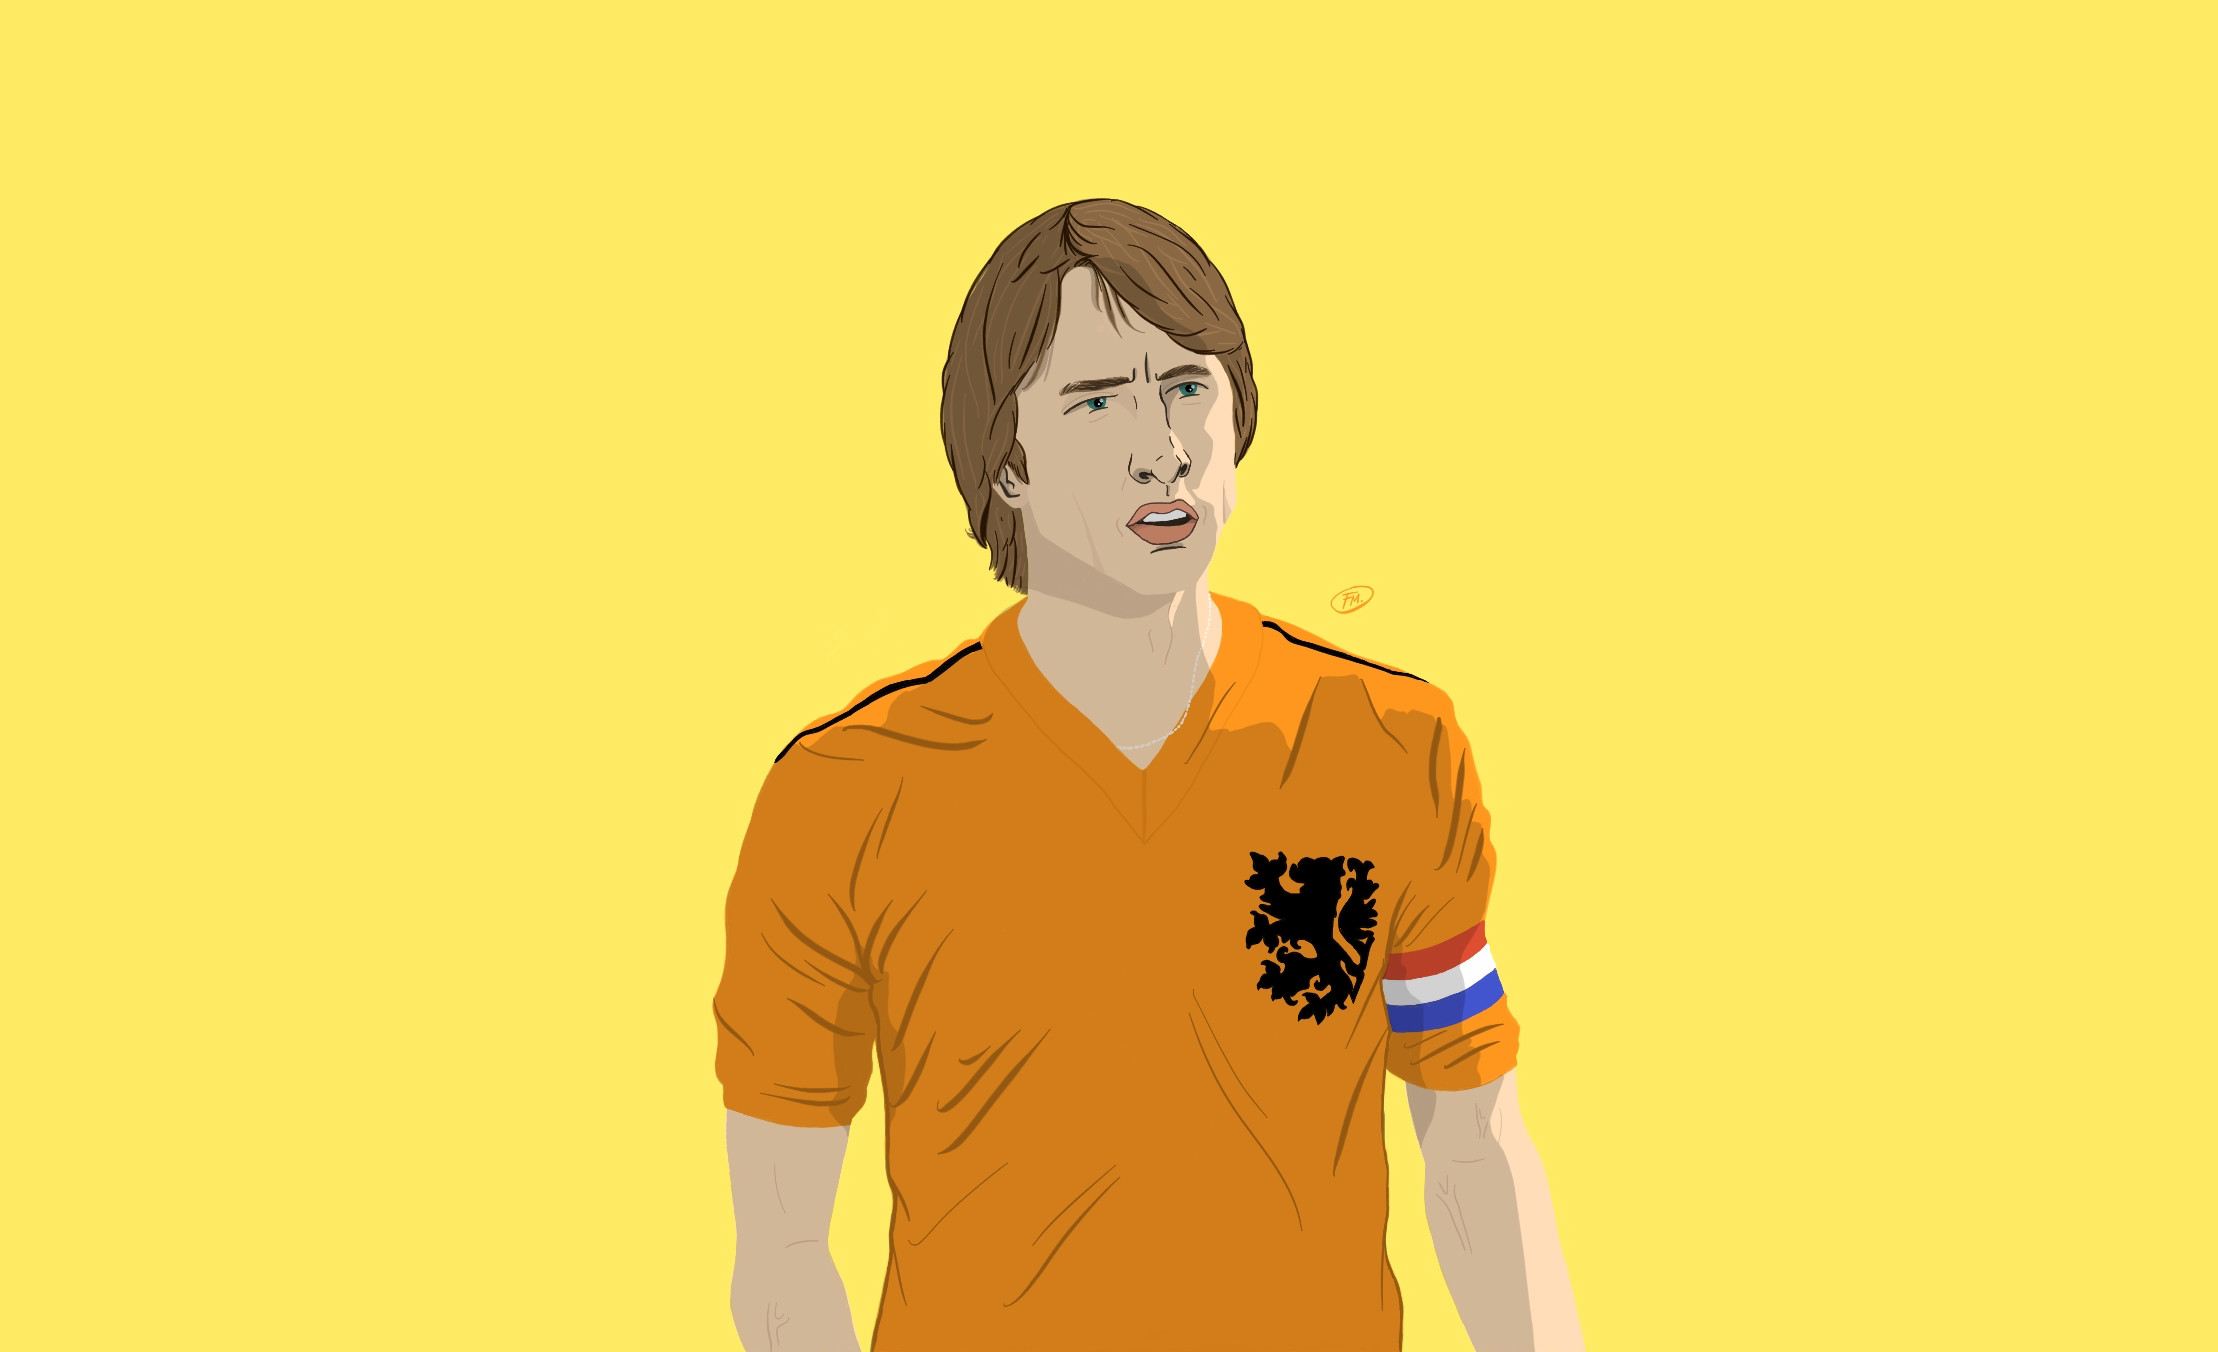 Johan Cruyff talent spotter manager orchestrator and genius